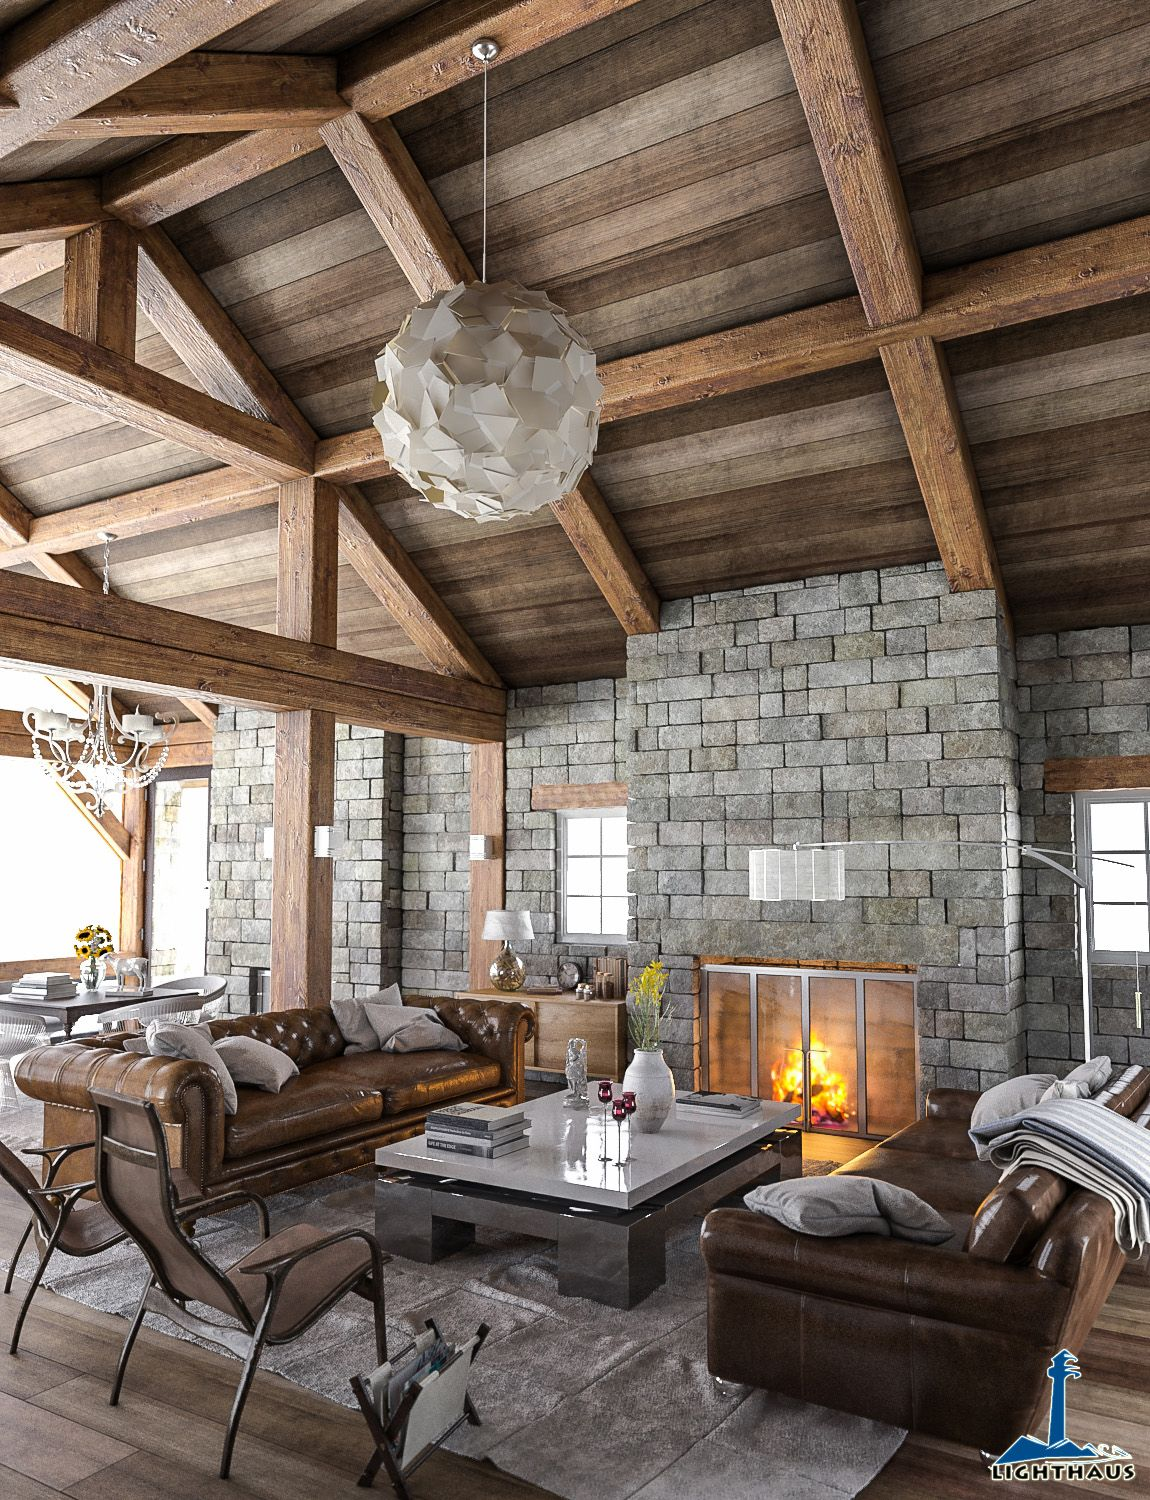 Rustic interior created by lighthaus studio using 3ds max for Rustic hotels near me